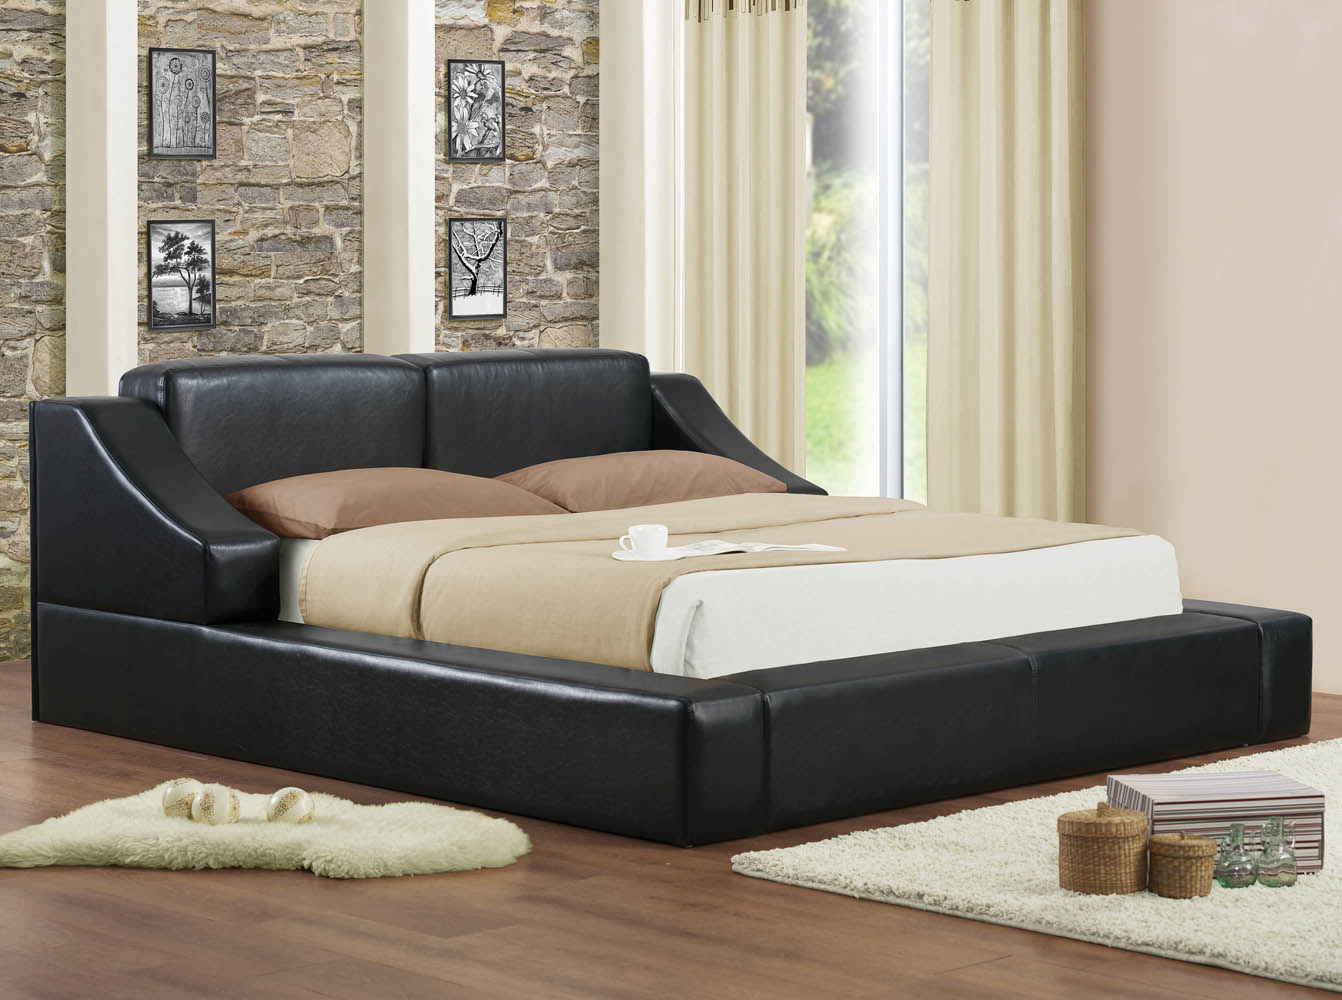 Contemporary Bedroom Set London Black By Acme Furniture: Queen Black Upholstered Platform Bed Frame